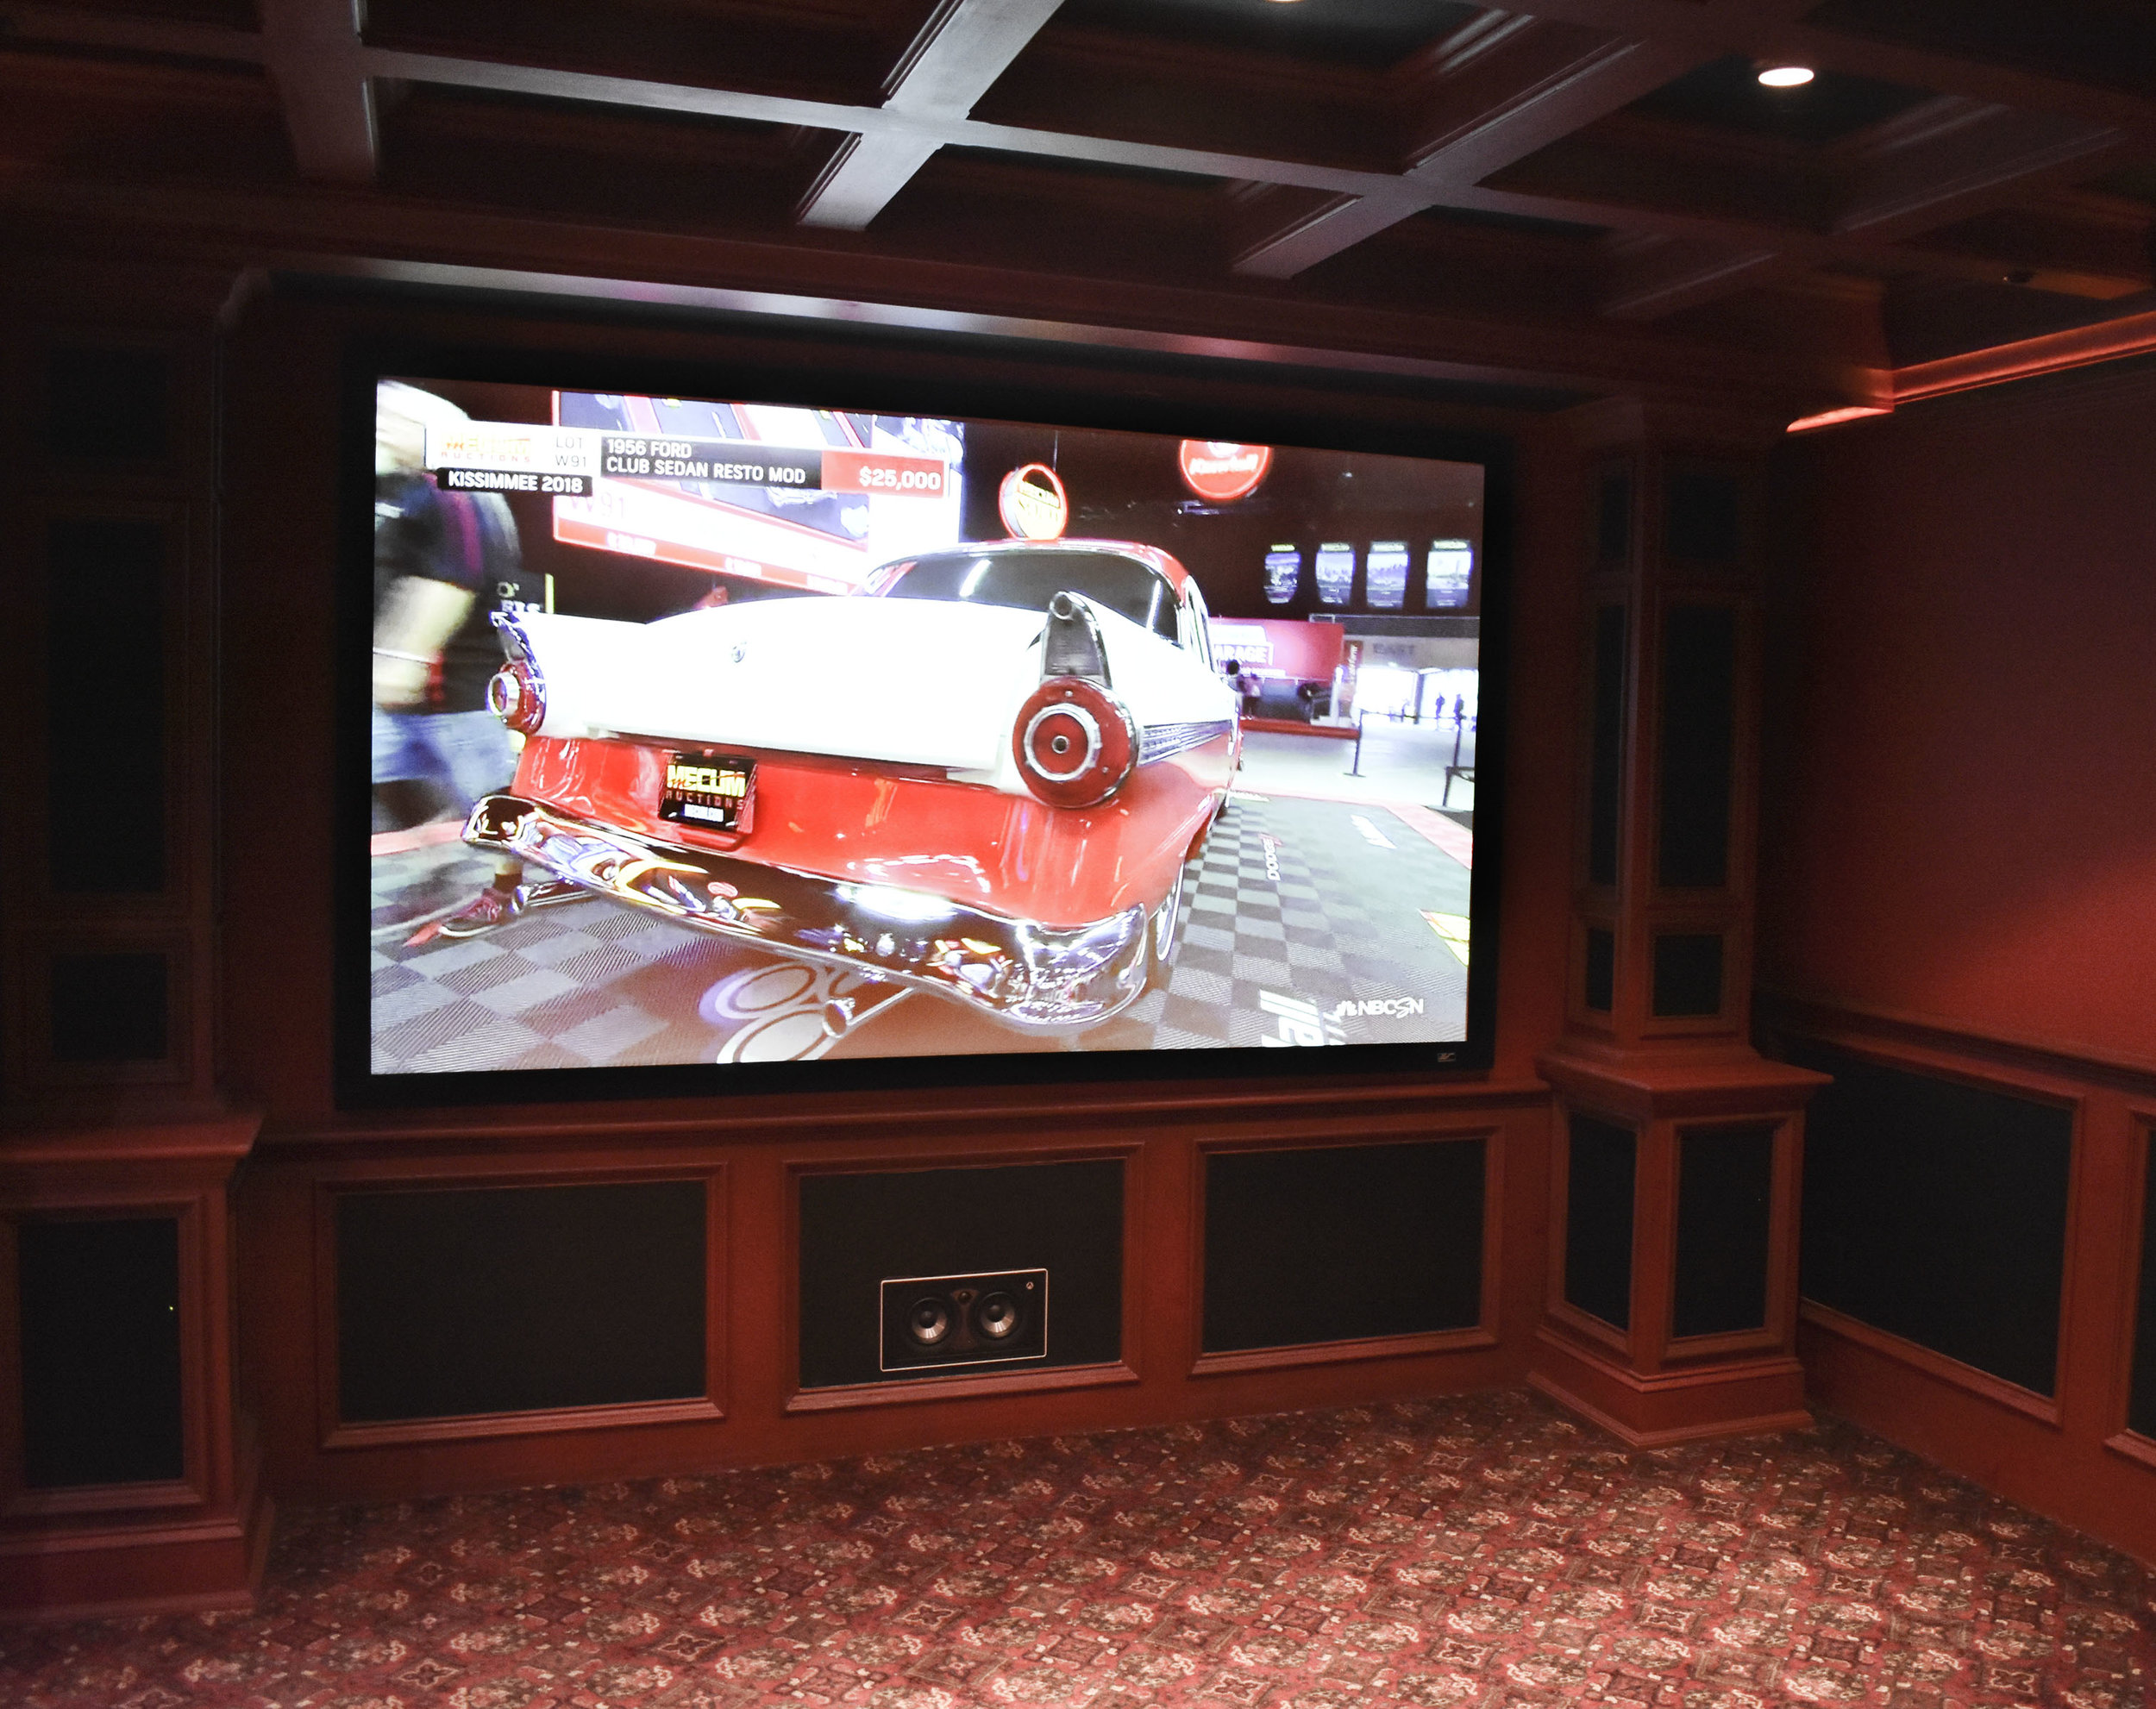 Home Theater - Full home theater experience and wireless surround sound are just a couple of options we offer. The Sound Resort can make any room in your home a media room.